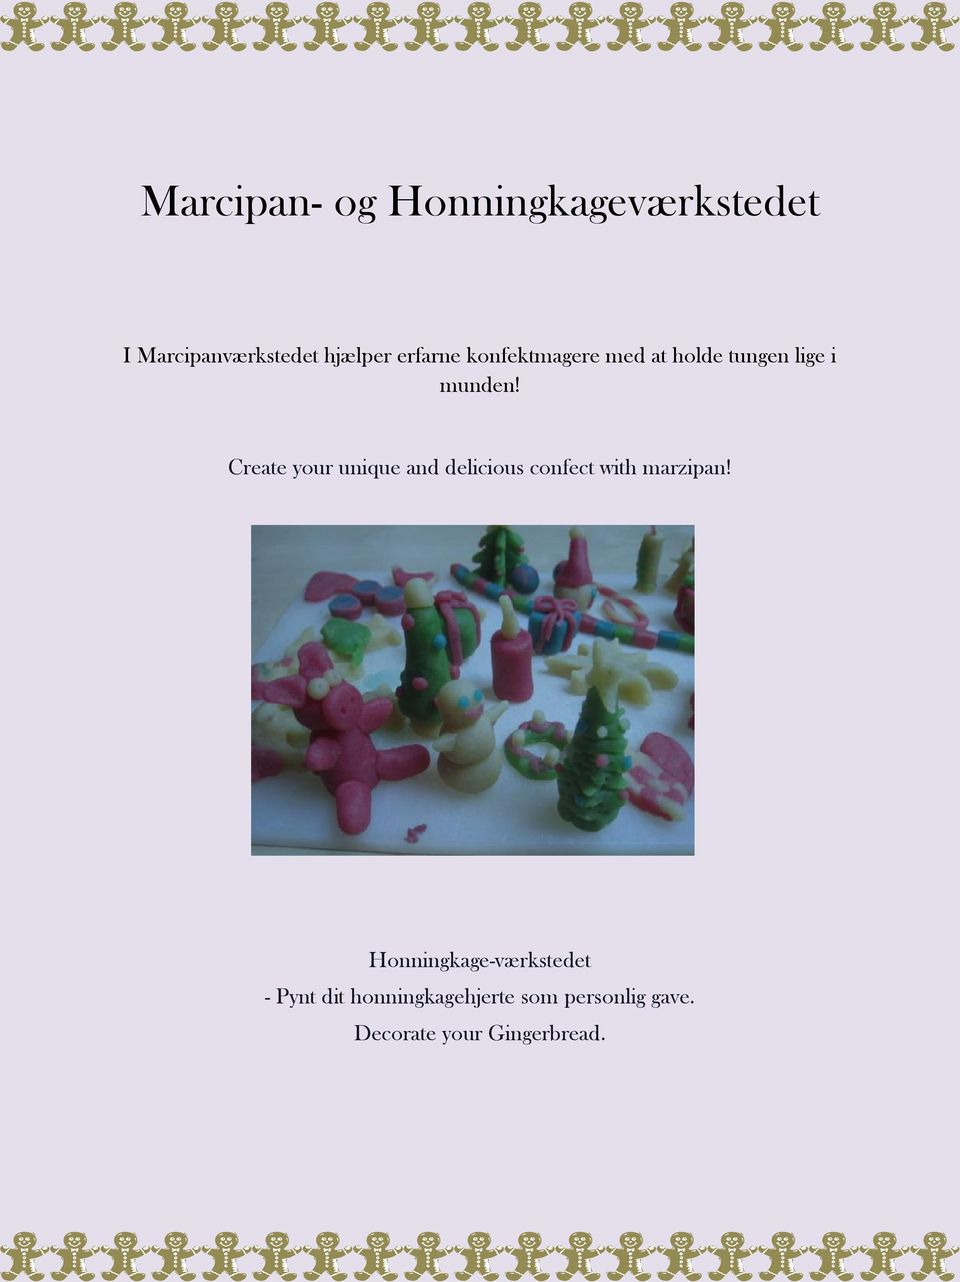 Create your unique and delicious confect with marzipan!